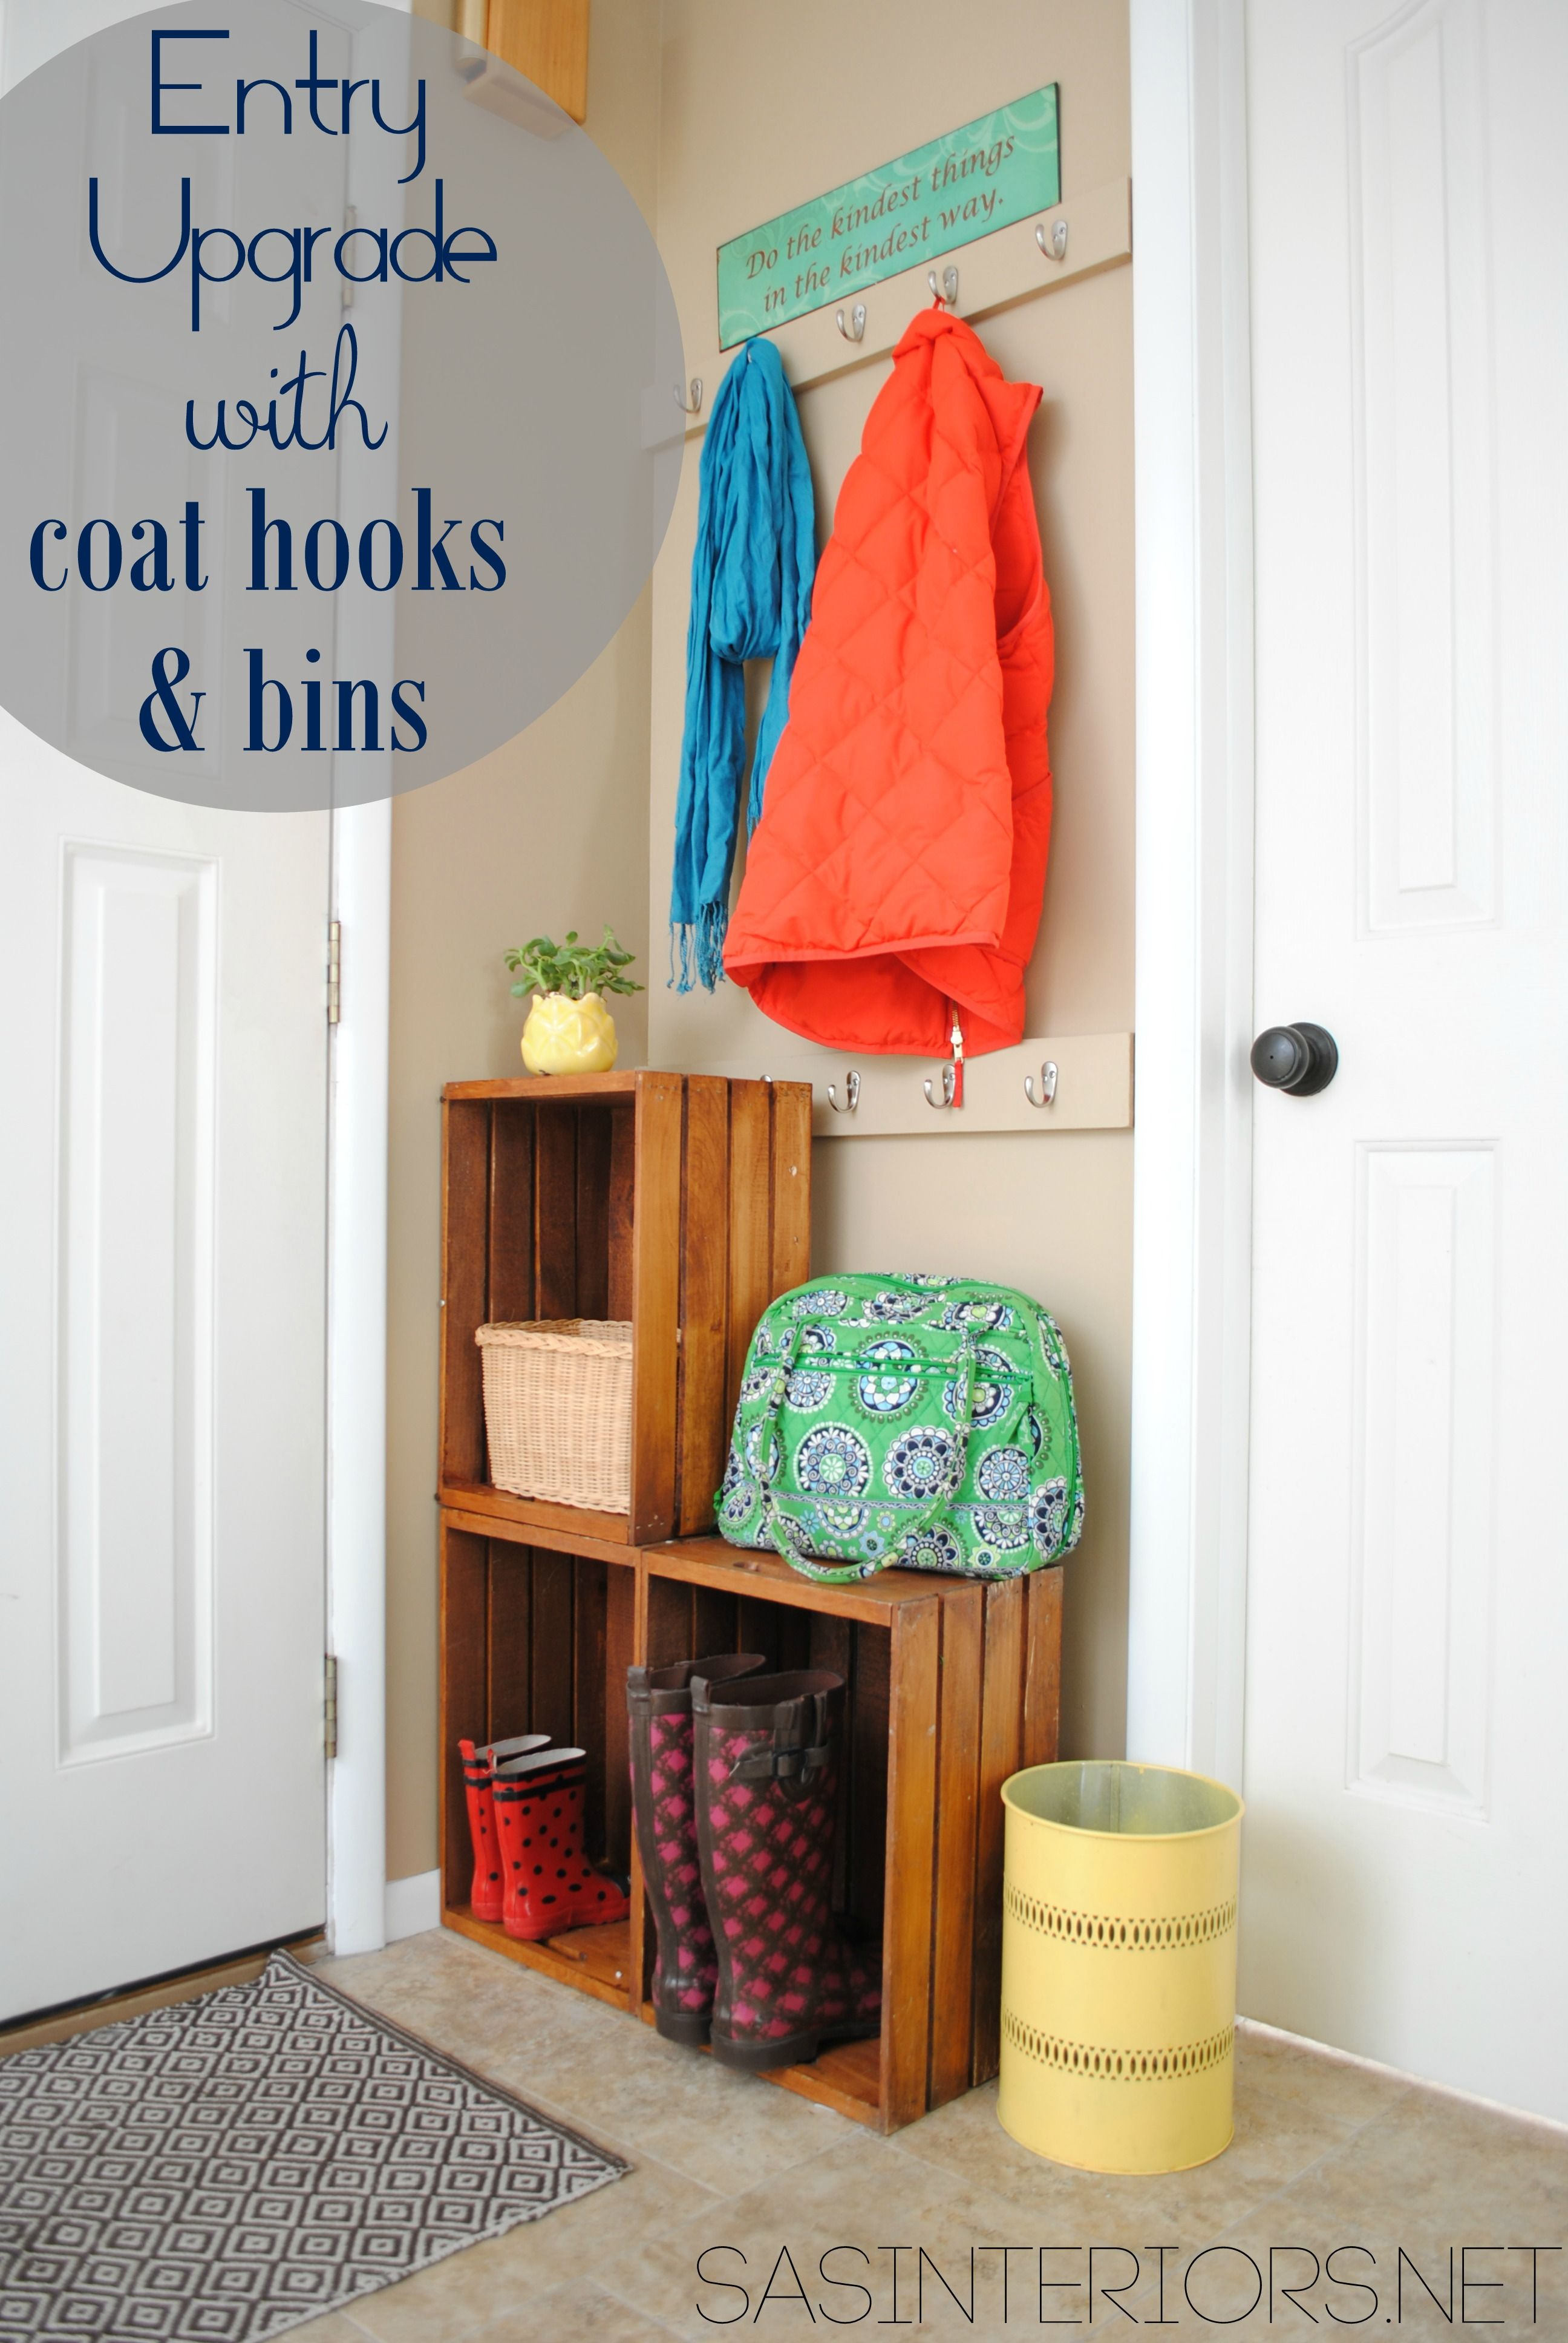 Easy entry upgrade with diy built in coat hooks and wooden crates easy entry upgrade with diy built in coat hooks and wooden crates via jennaburger amipublicfo Choice Image